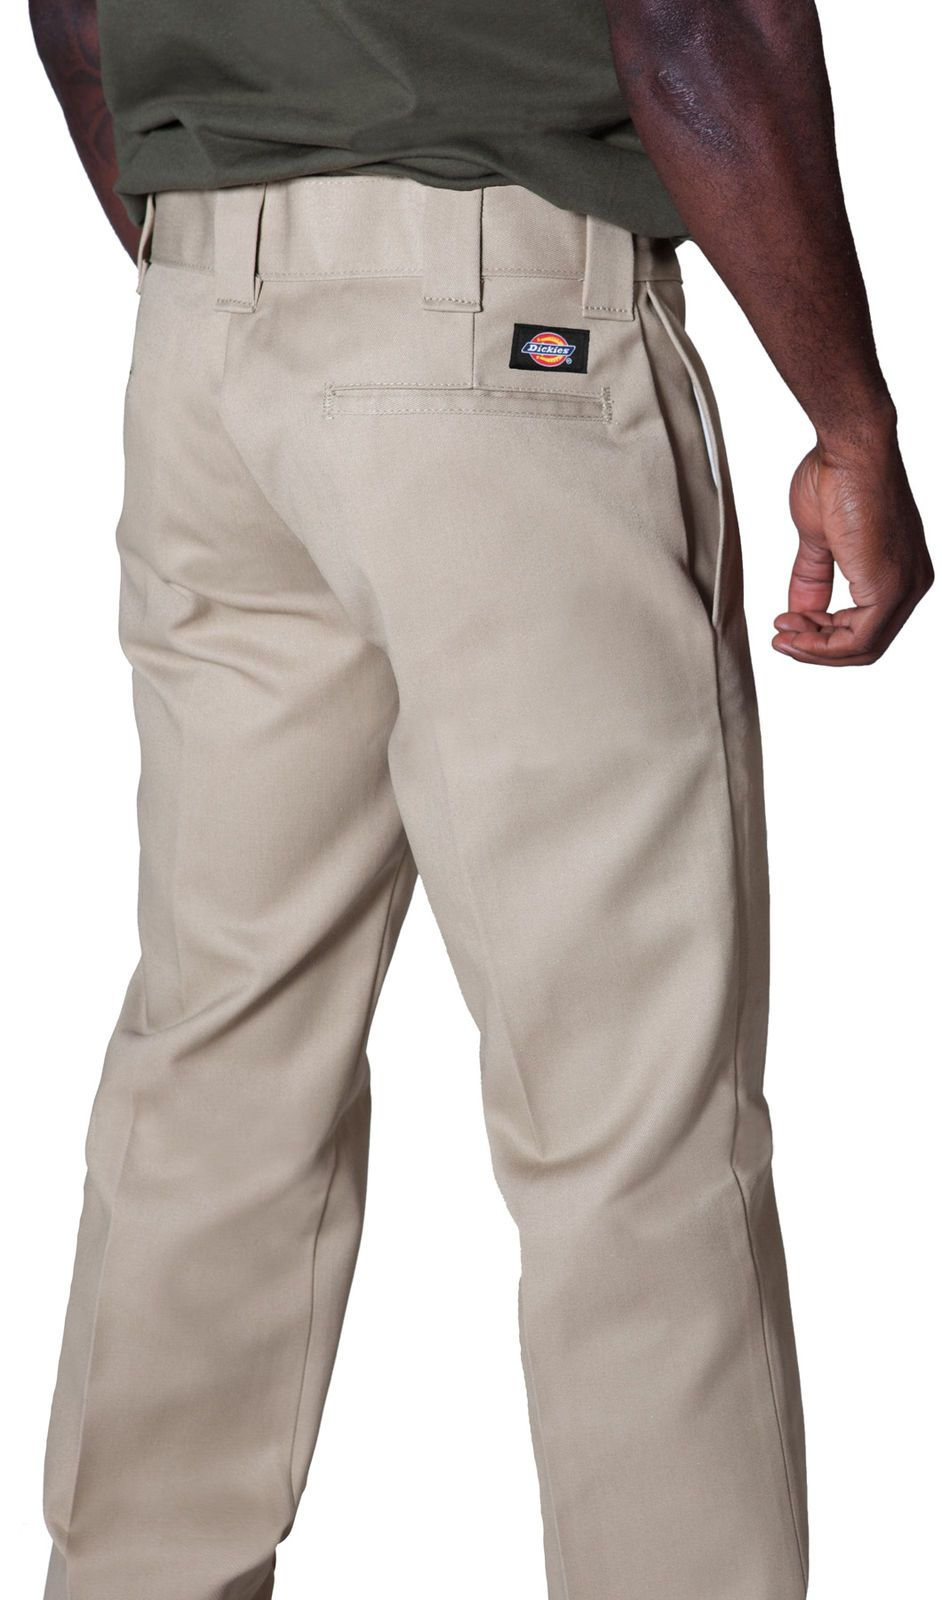 Close-up angled back view of khaki twill fabric work pants showing 'Dickies' logo, back pocket and belt loops.